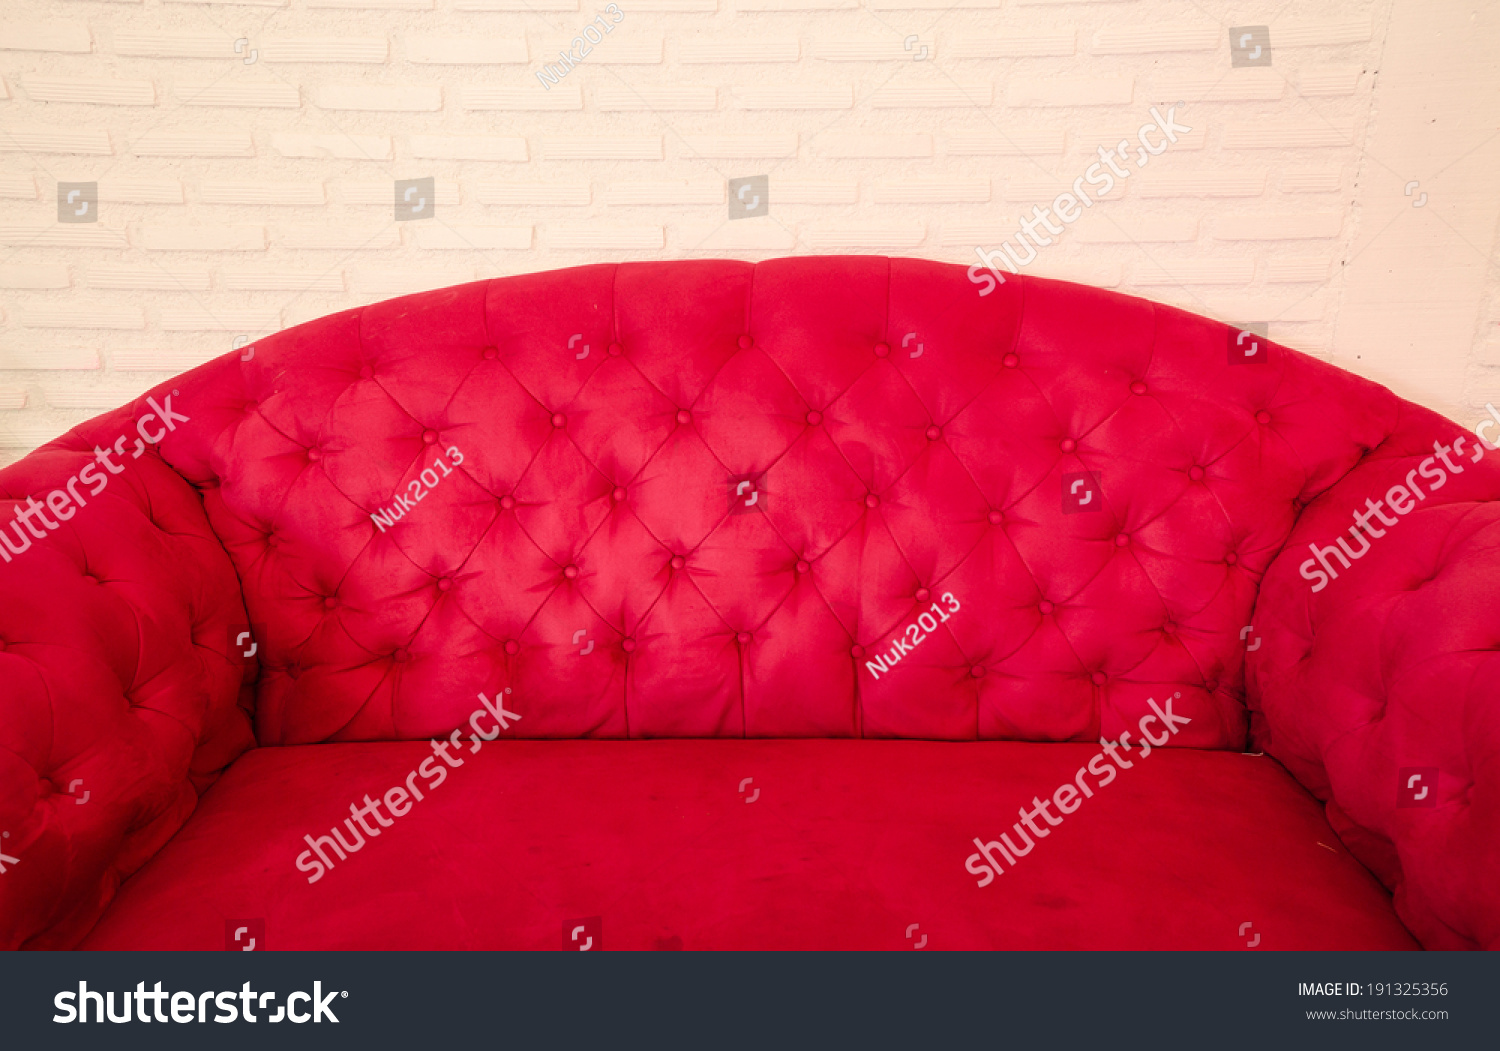 velvet stock to image use red sofa couch safe photo shutterstock